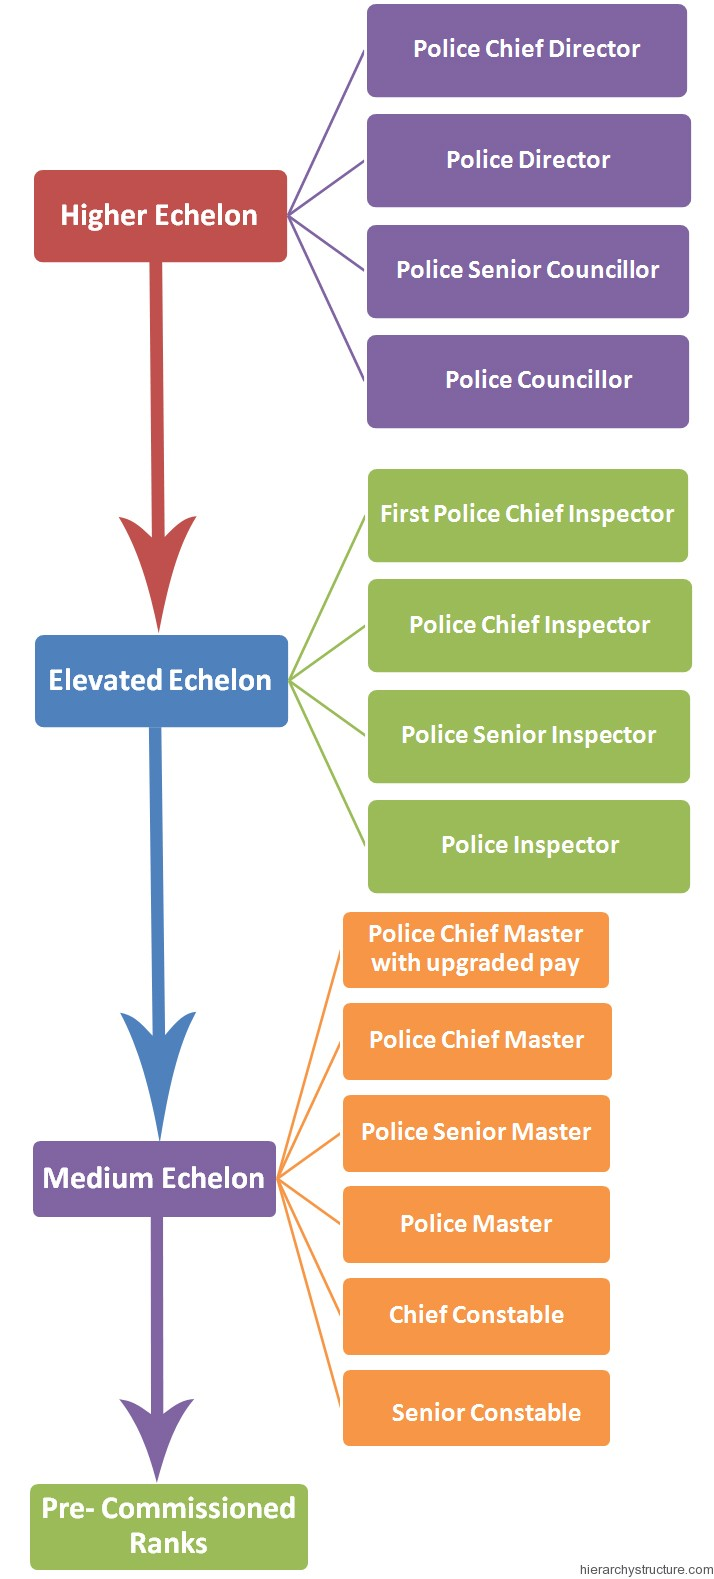 Police Hierarchy in Germany